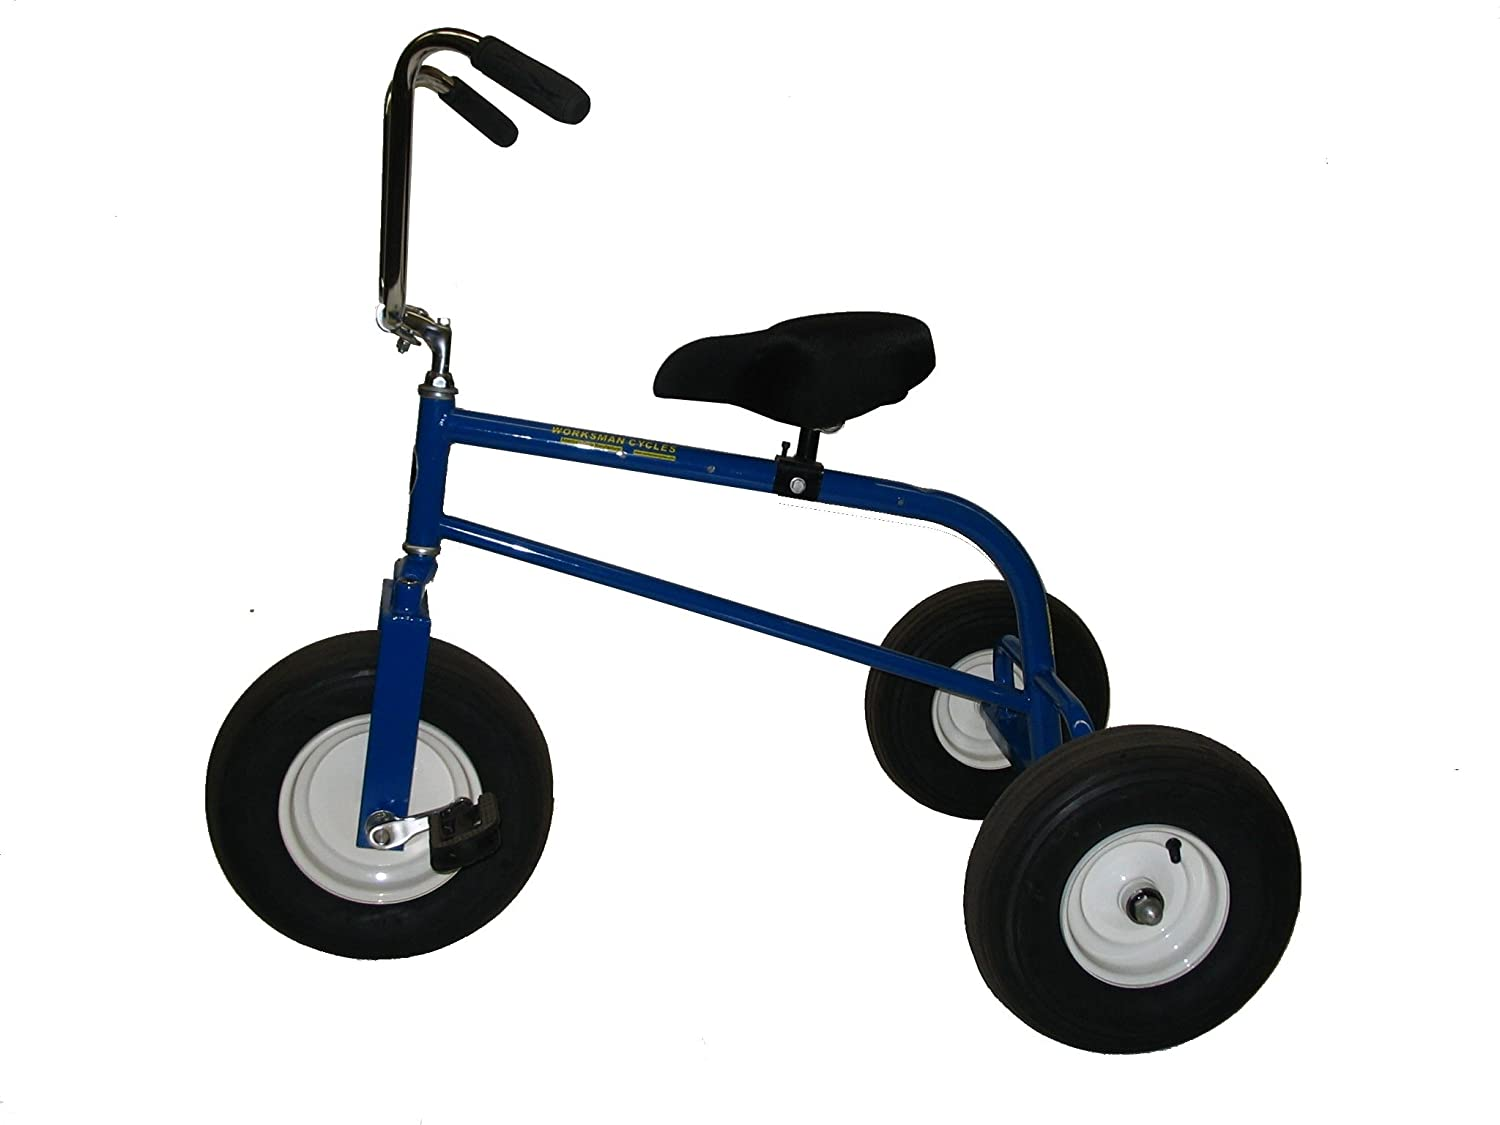 Worksman WTX Wide Tracking Adult Trike tricycle for adults motorized